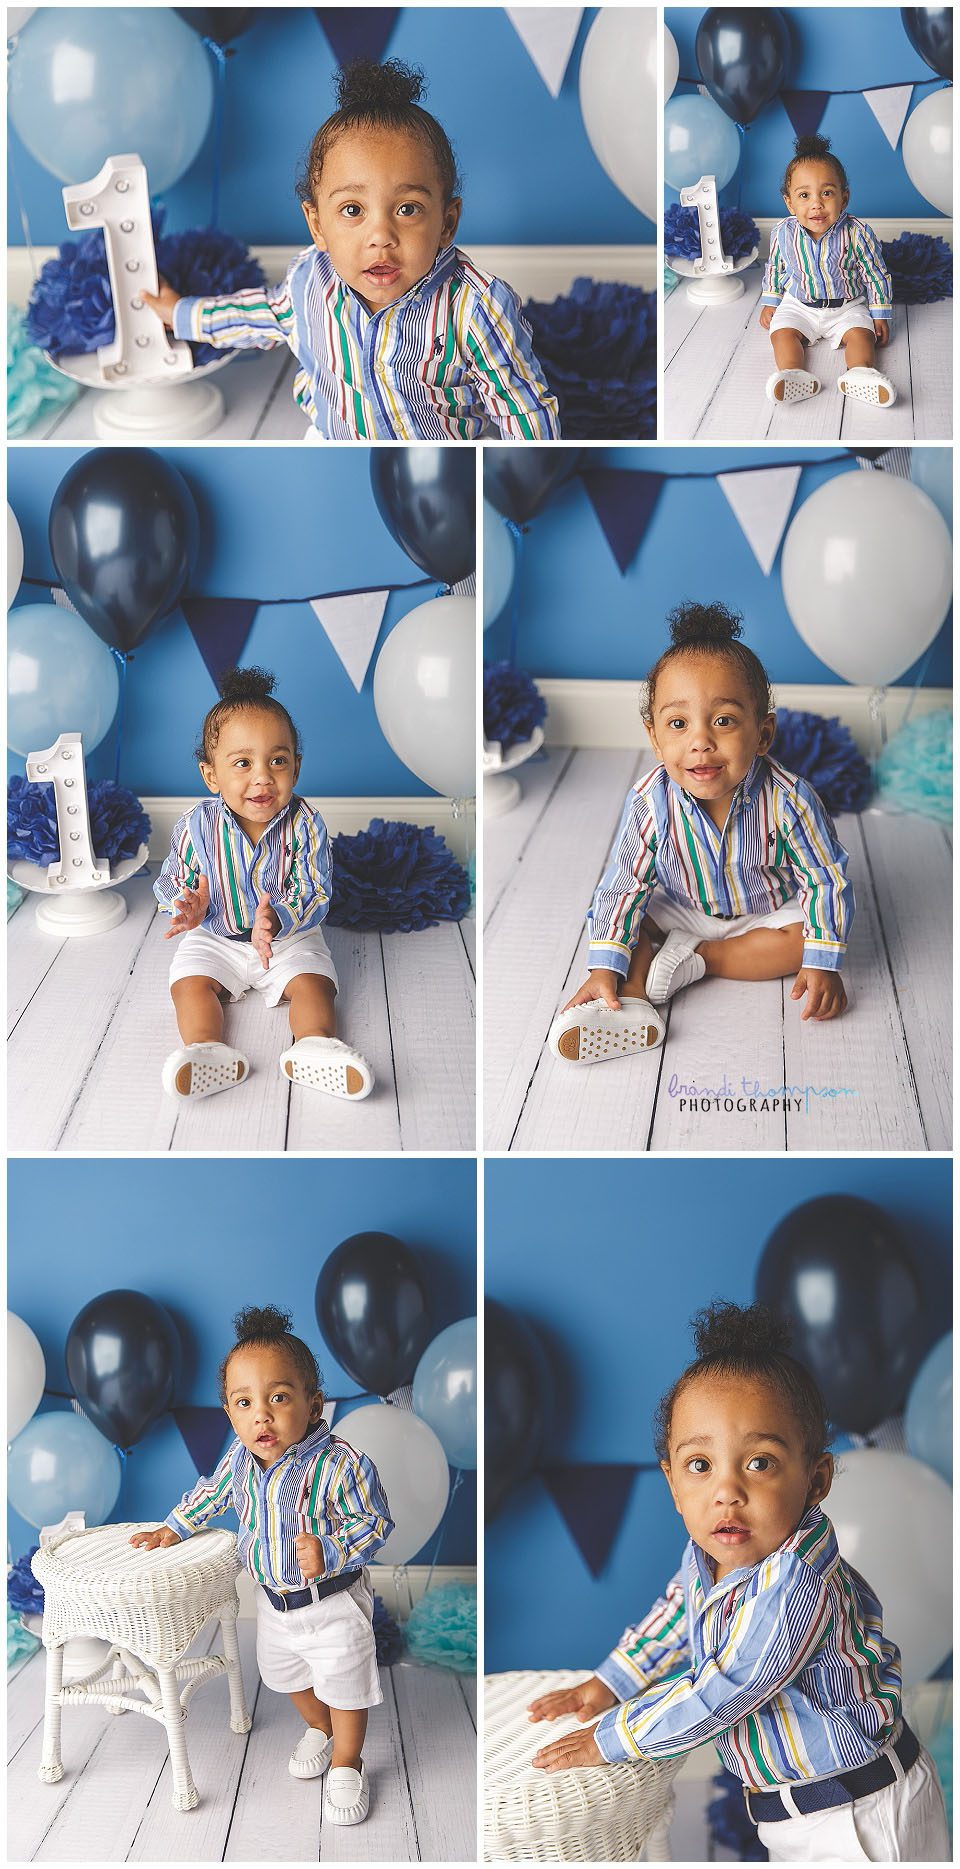 One year old Black baby boy in blue striped shirt, white shorts, with a blue and white birthday background, plano tx